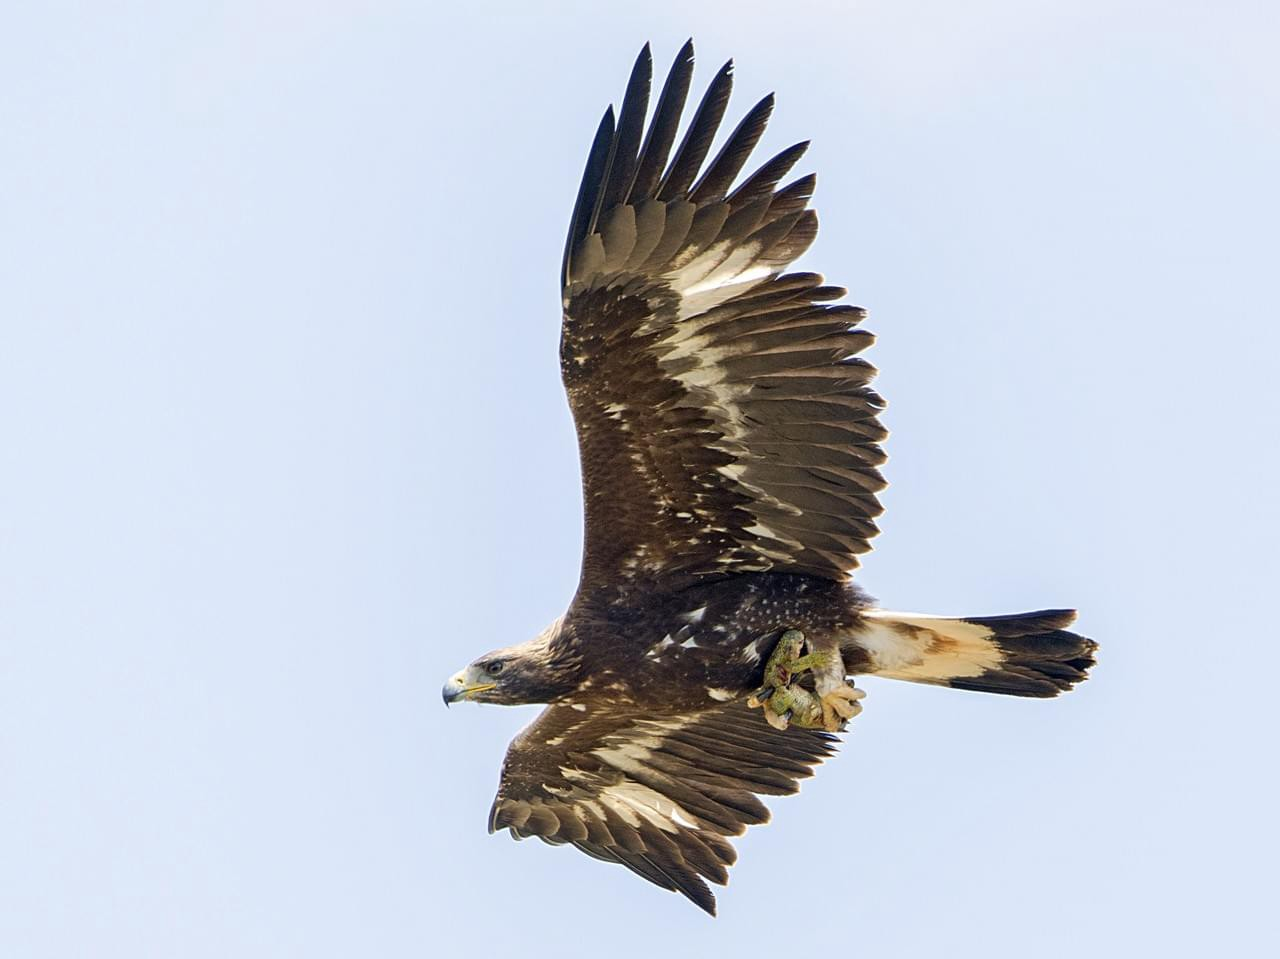 Immature golden eagle soaring in the sky